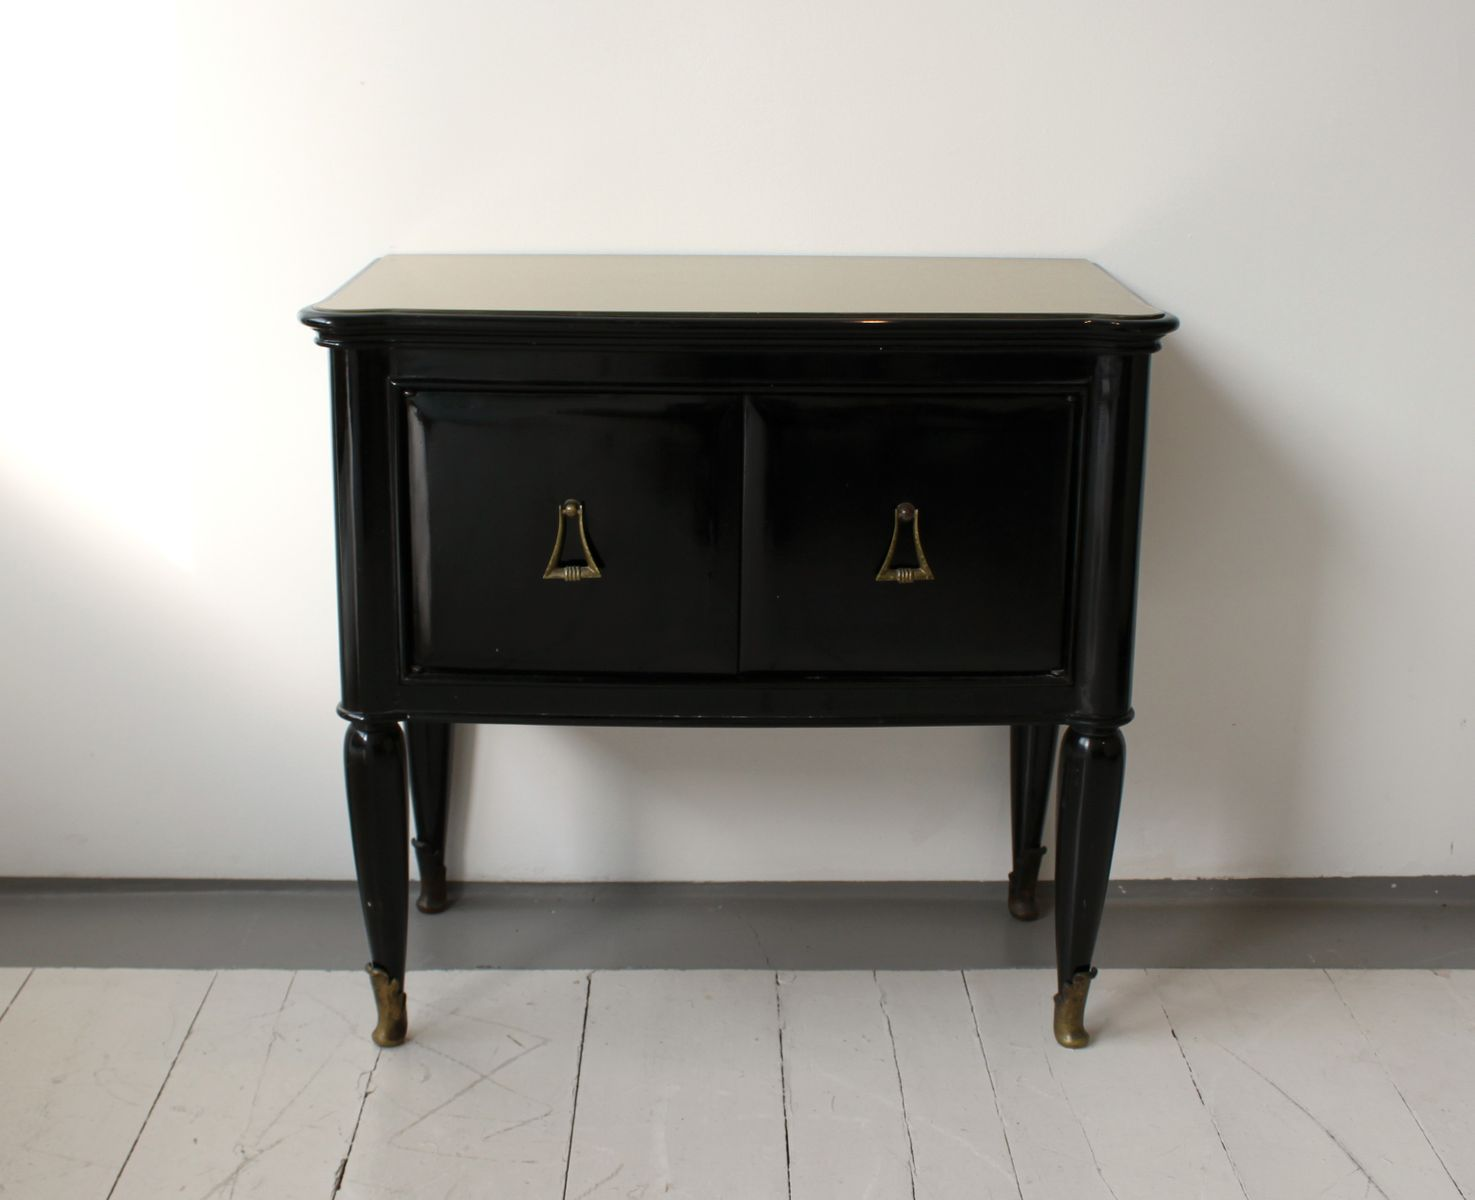 Italian console table cabinets 1950s set of 2 for sale at pamono - Sofa table with cabinets ...